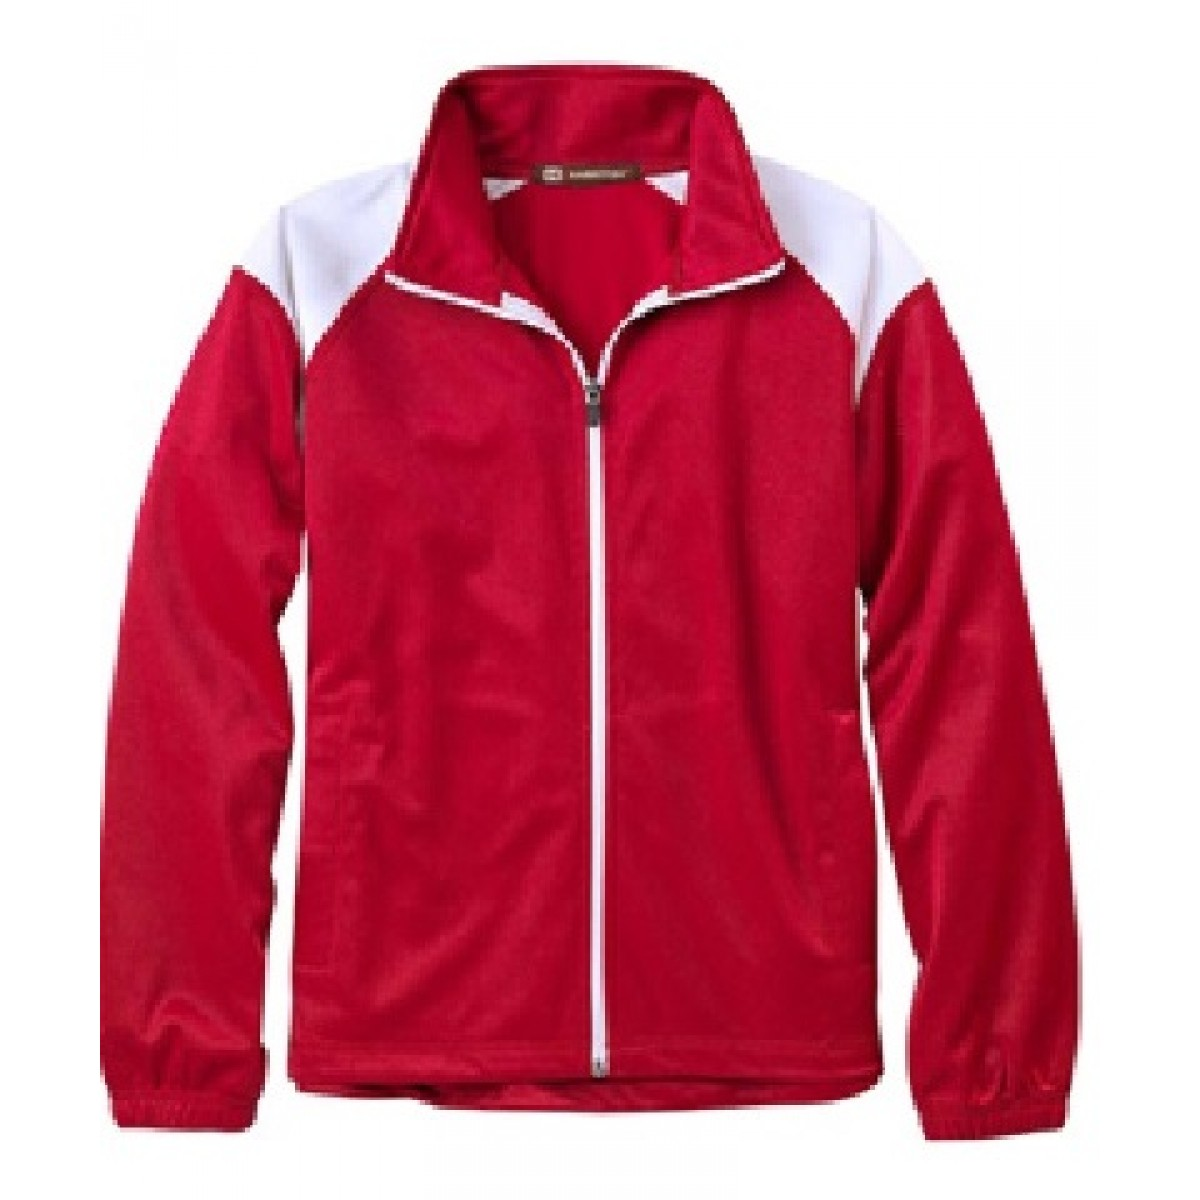 Embroidered Red Tricot Track Jacket-Red-3XL